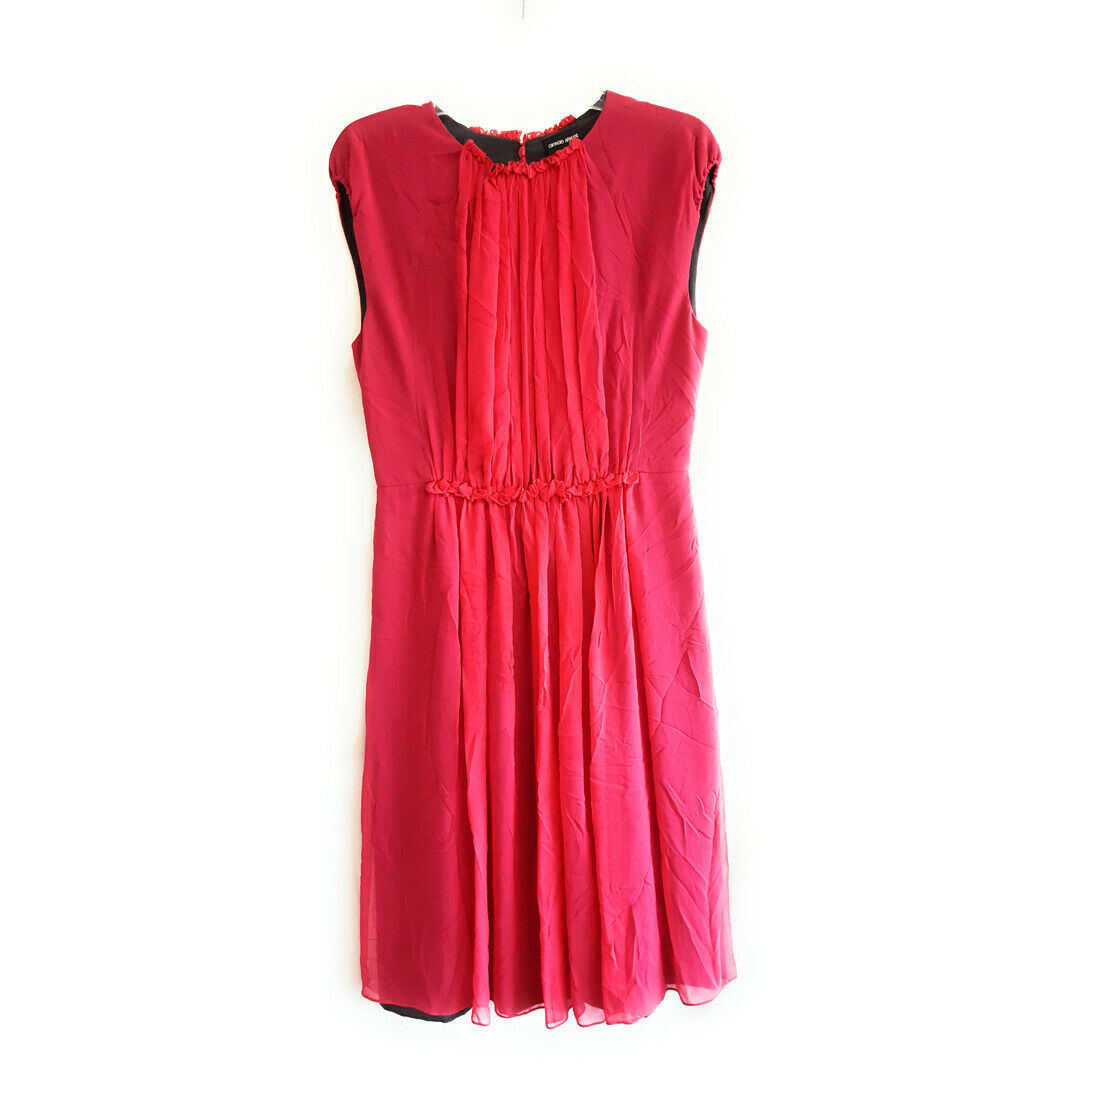 Giorgio Armani Silky Flow Dress, Hot Pink, 42 image 1